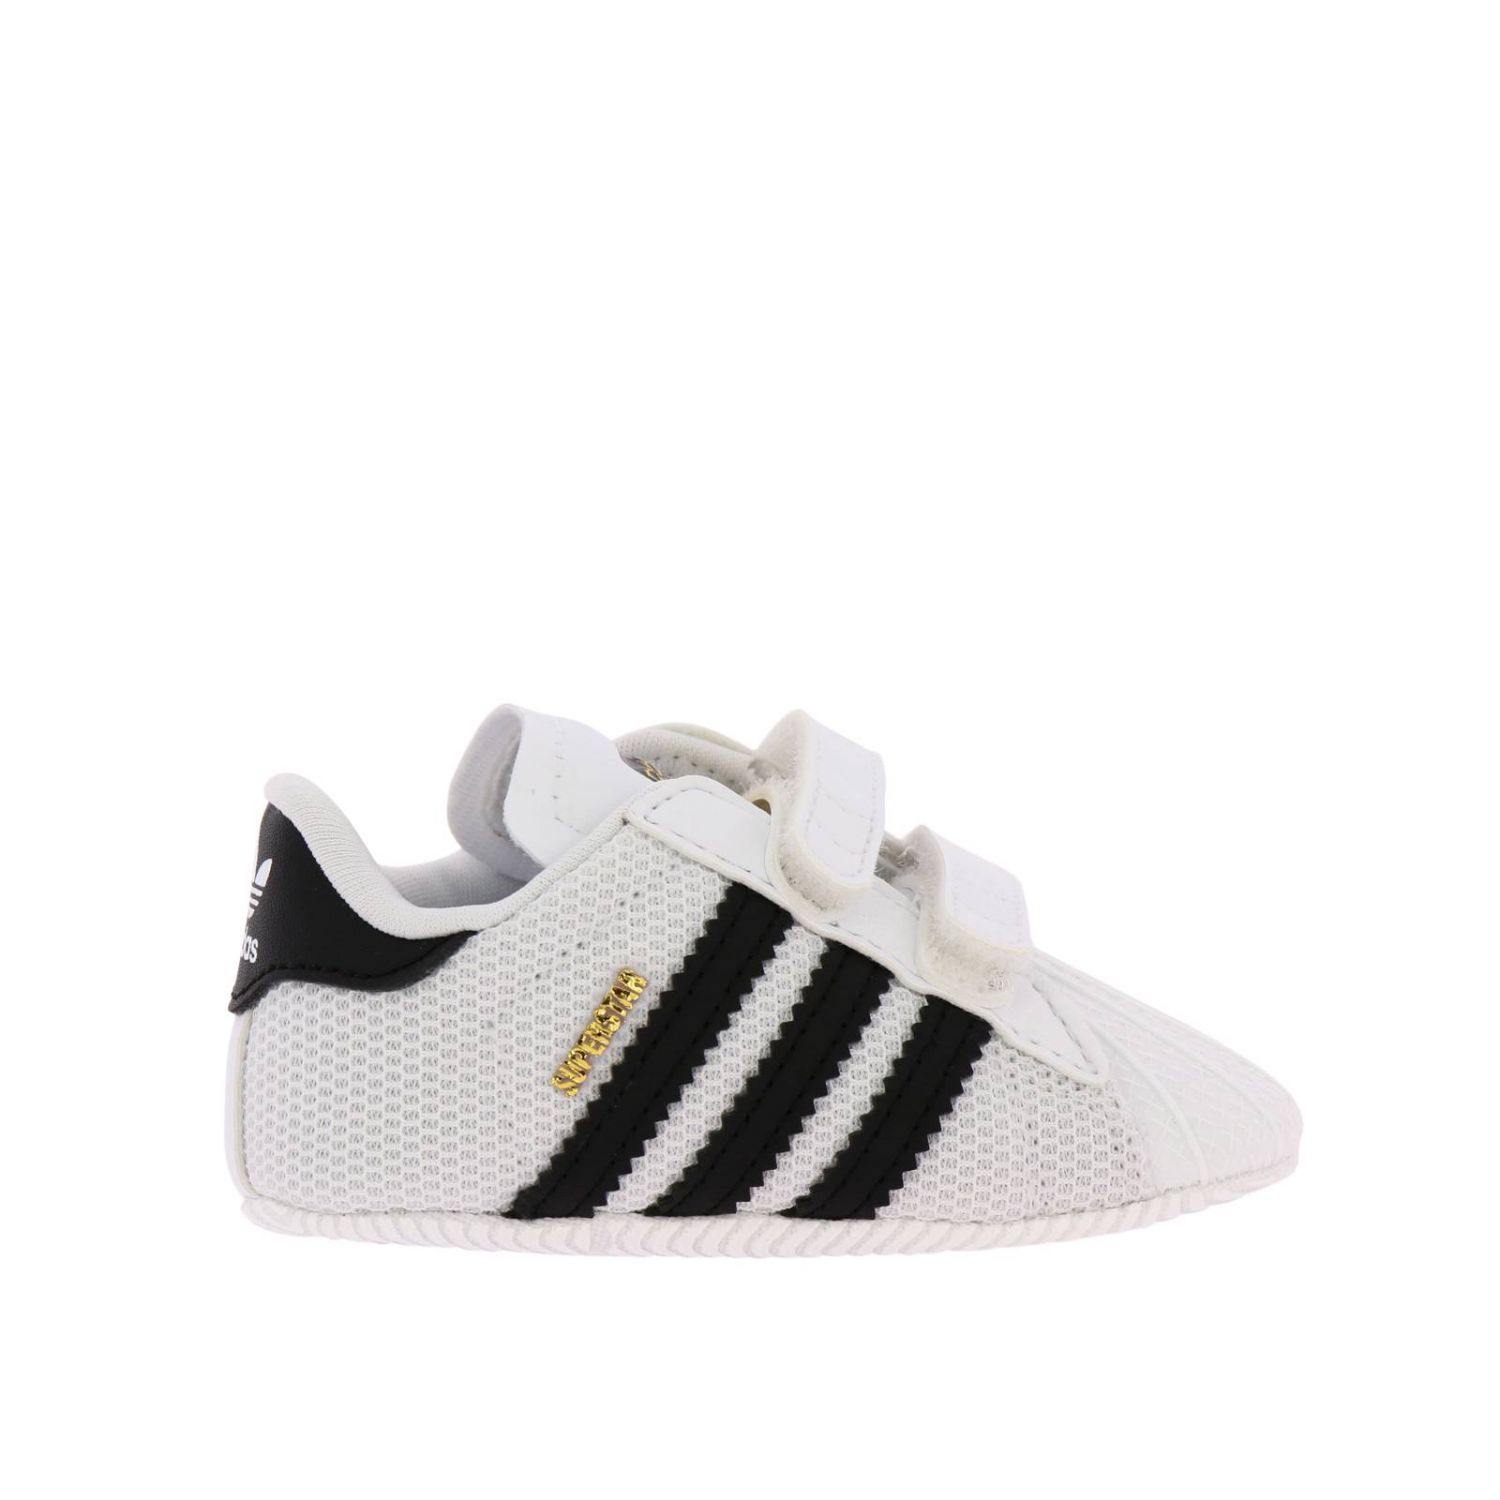 Shoes Adidas Originals: Adidas Originals Superstar sneakers in canvas and rubber white 1